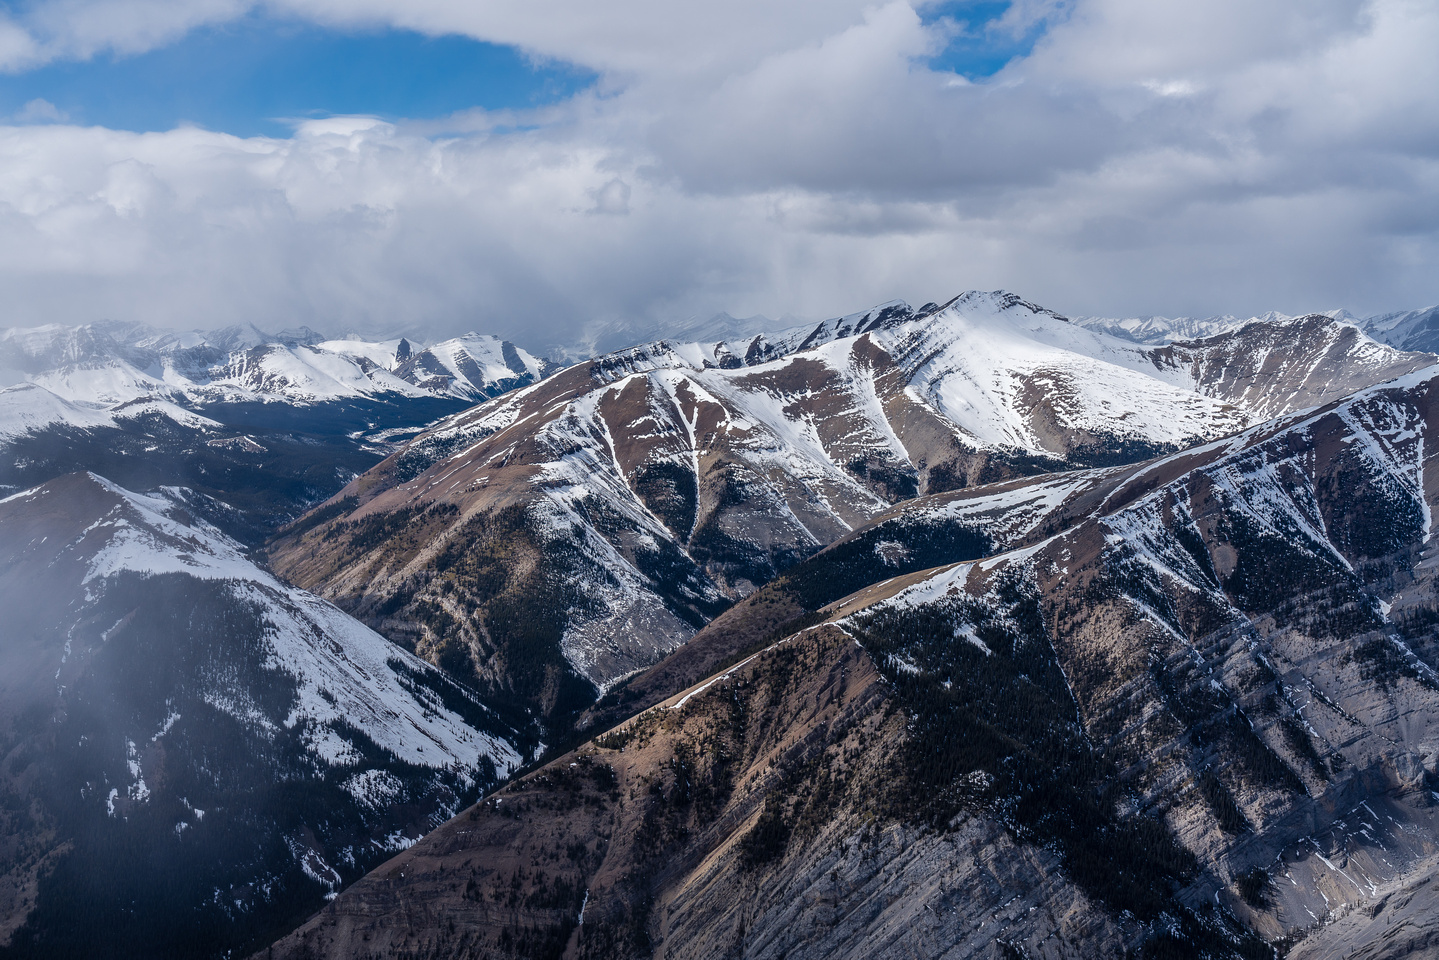 Mount White at distant left with Gable at center foreground.